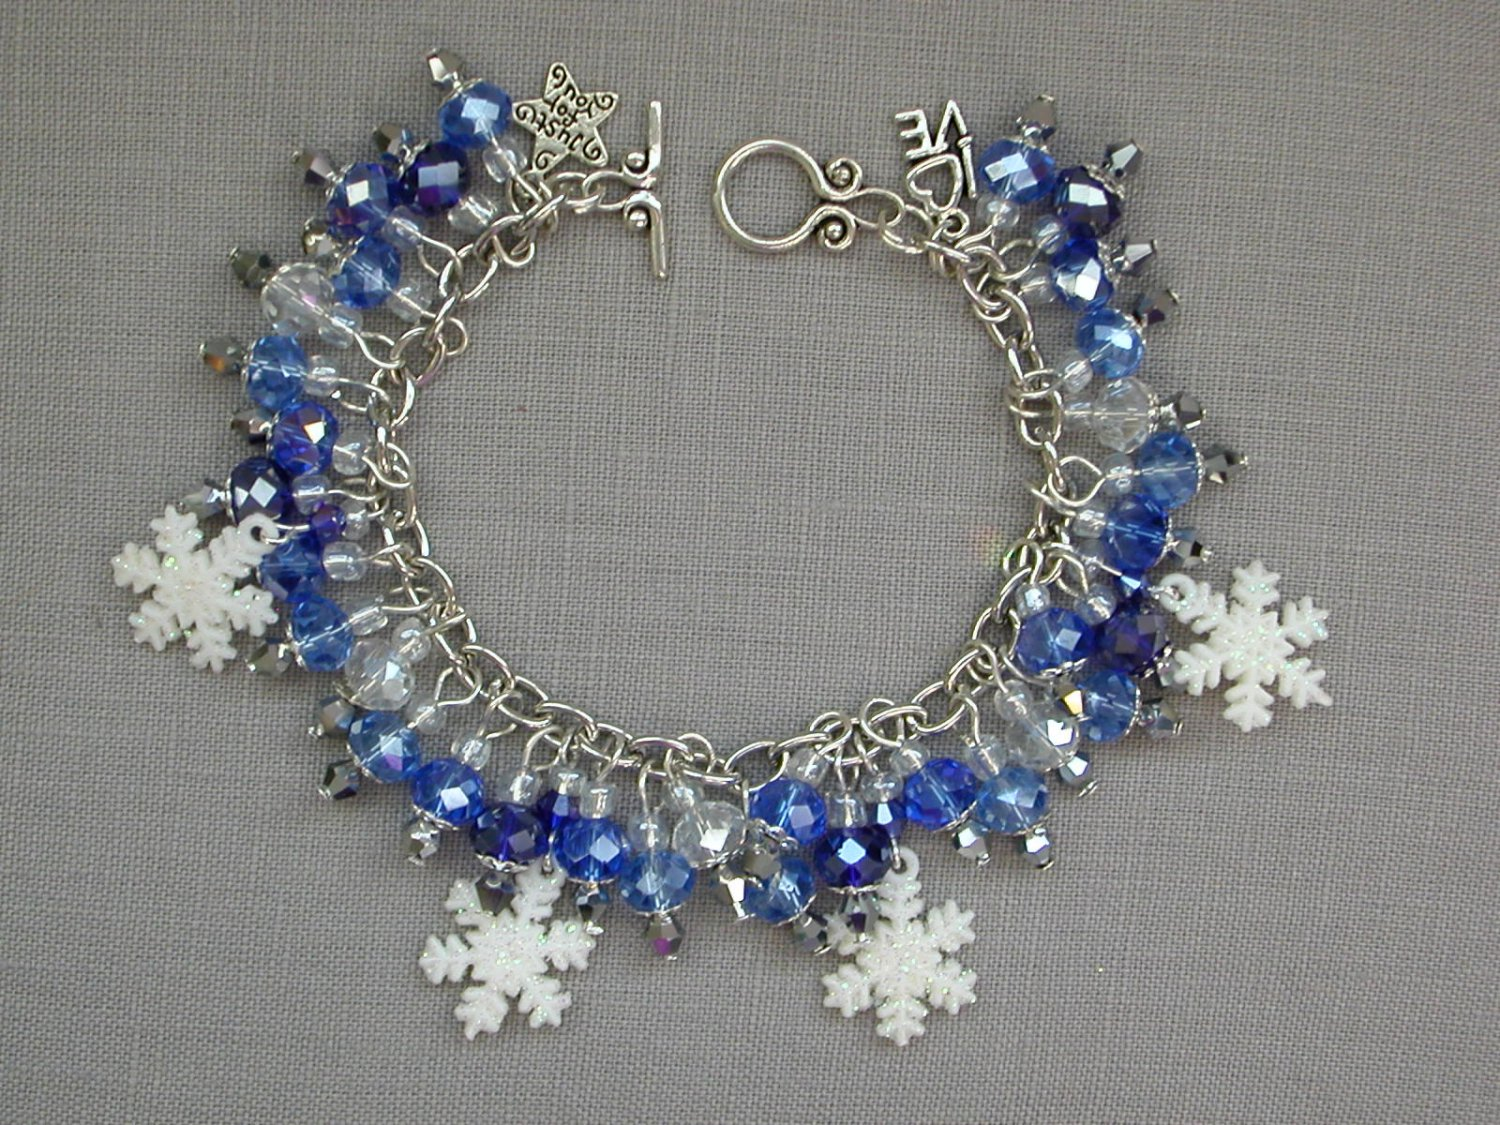 White Snowflake Cobalt and Baby Blue Crystal Bead Charm Bracelet